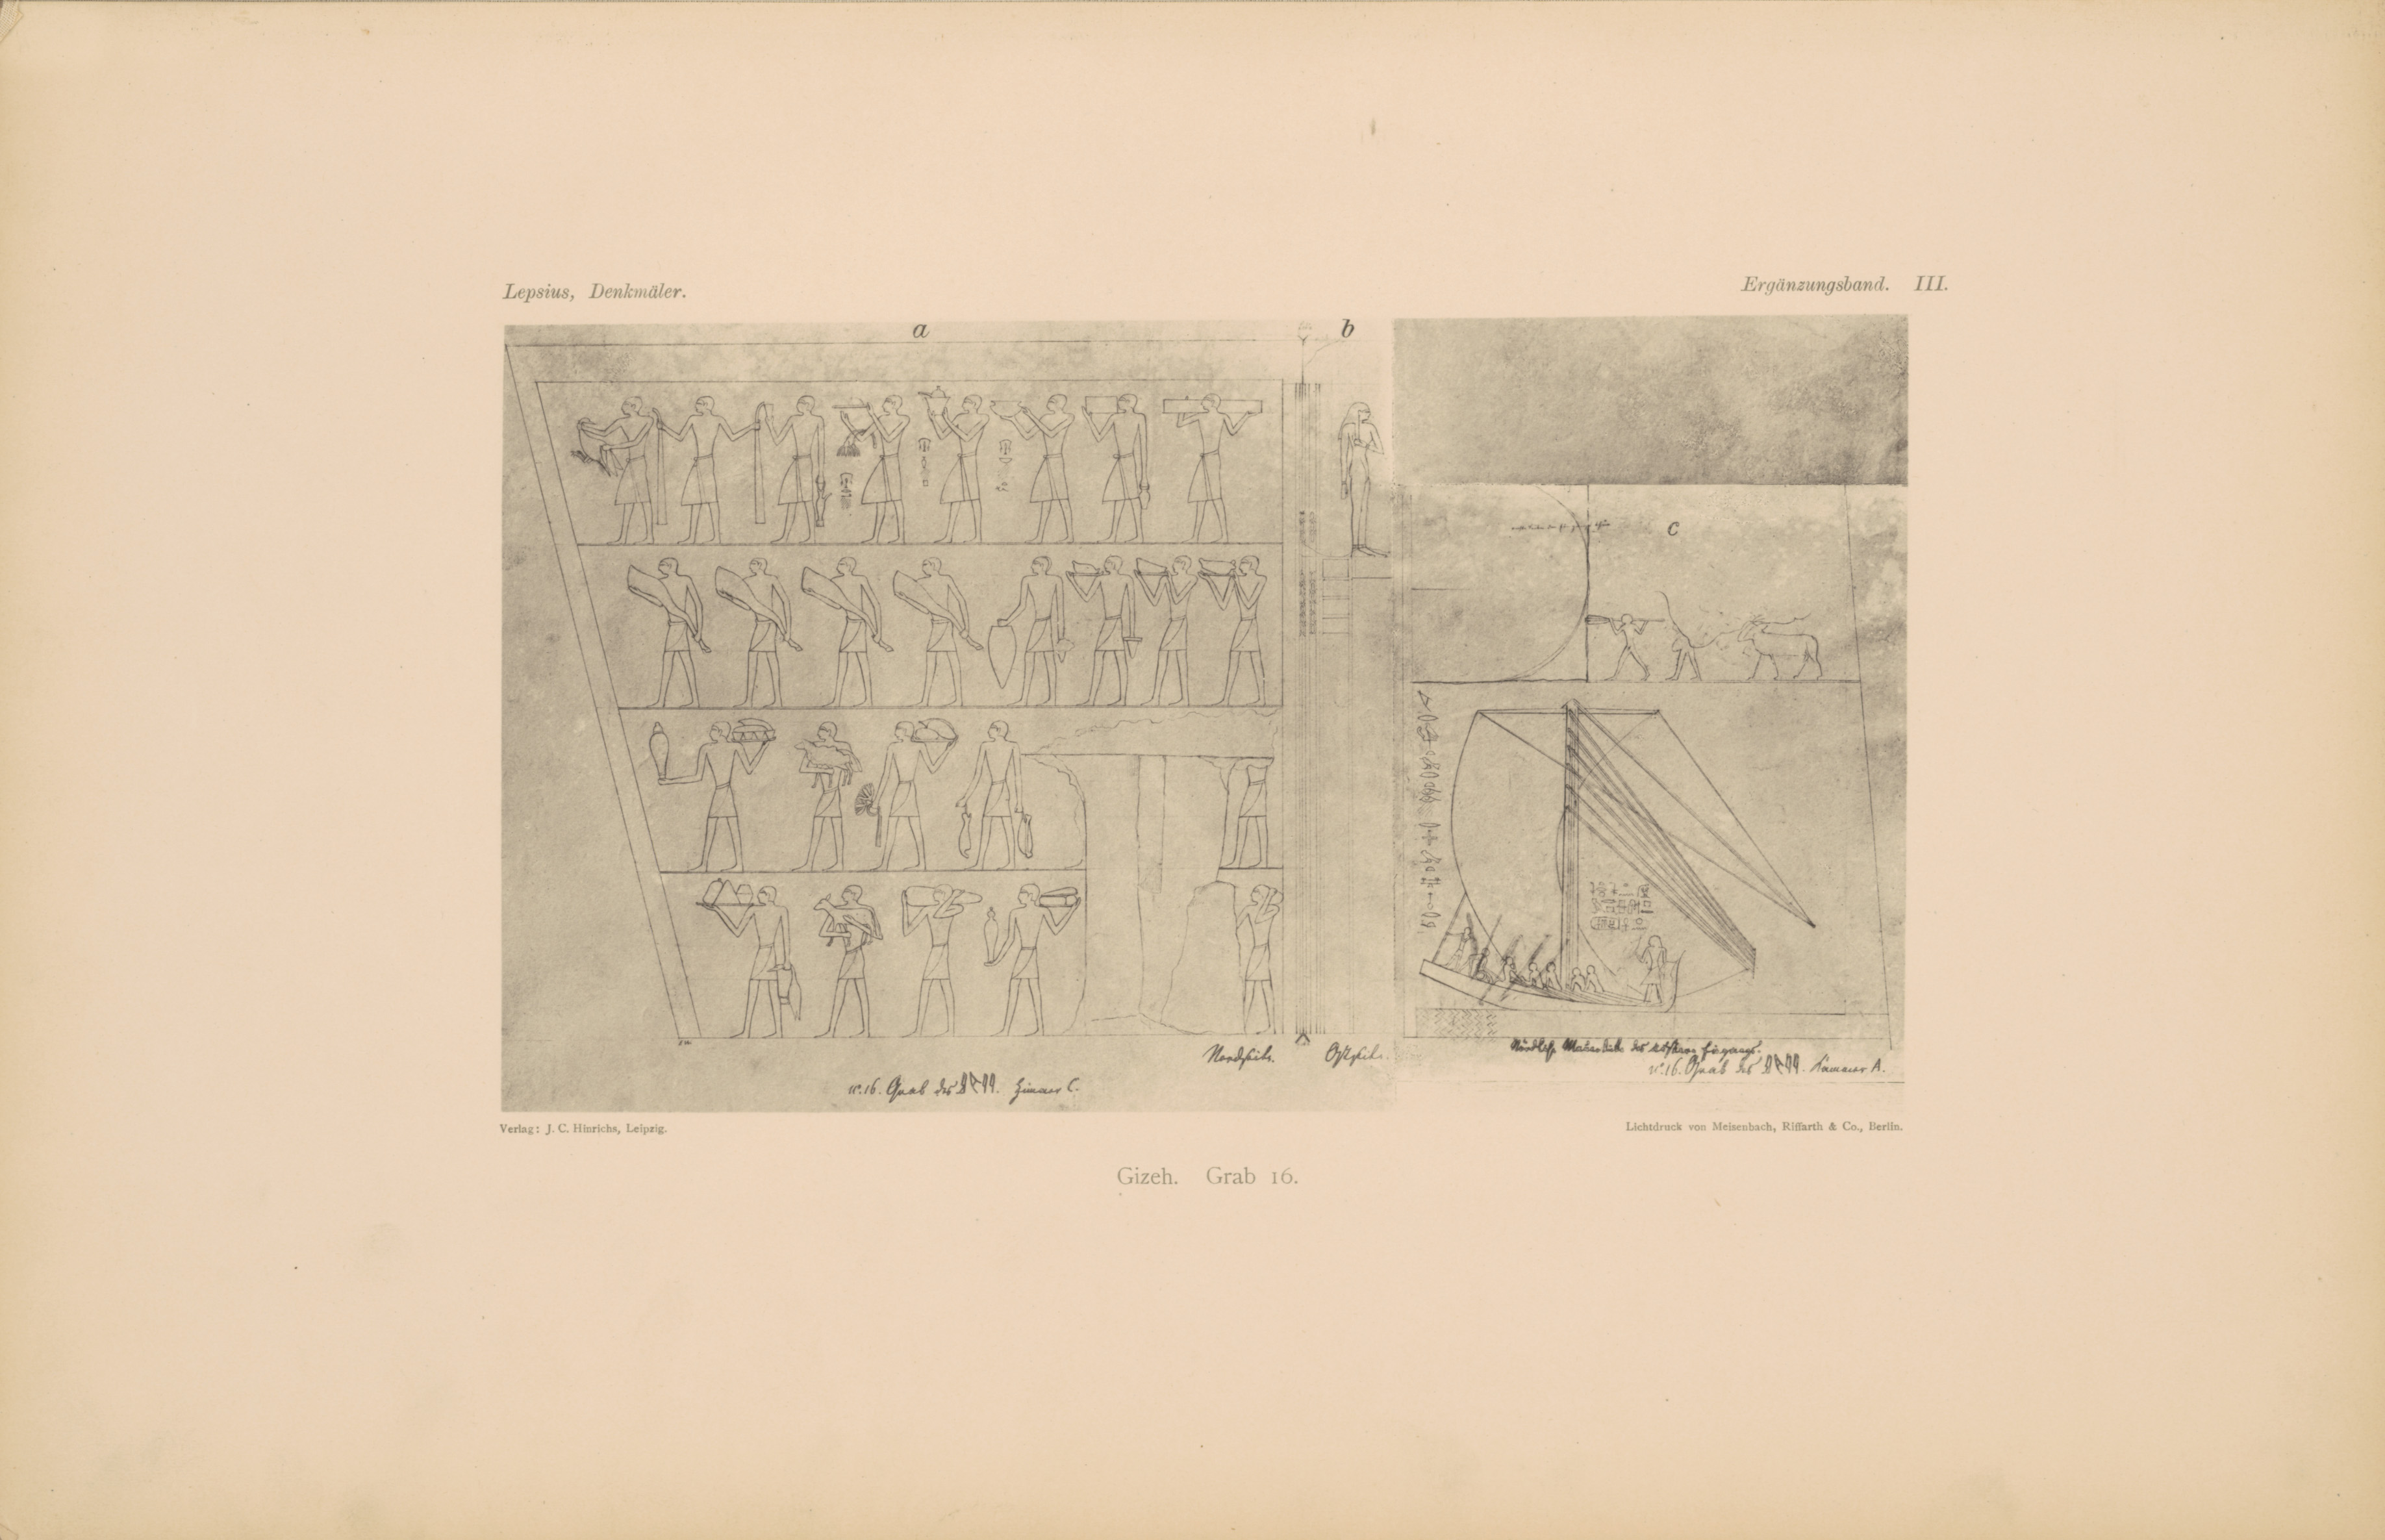 Drawings: G 6020 (= Lepsius 16): relief from chamber 3, N wall and E wall, and chamber 1, entrance, N jamb